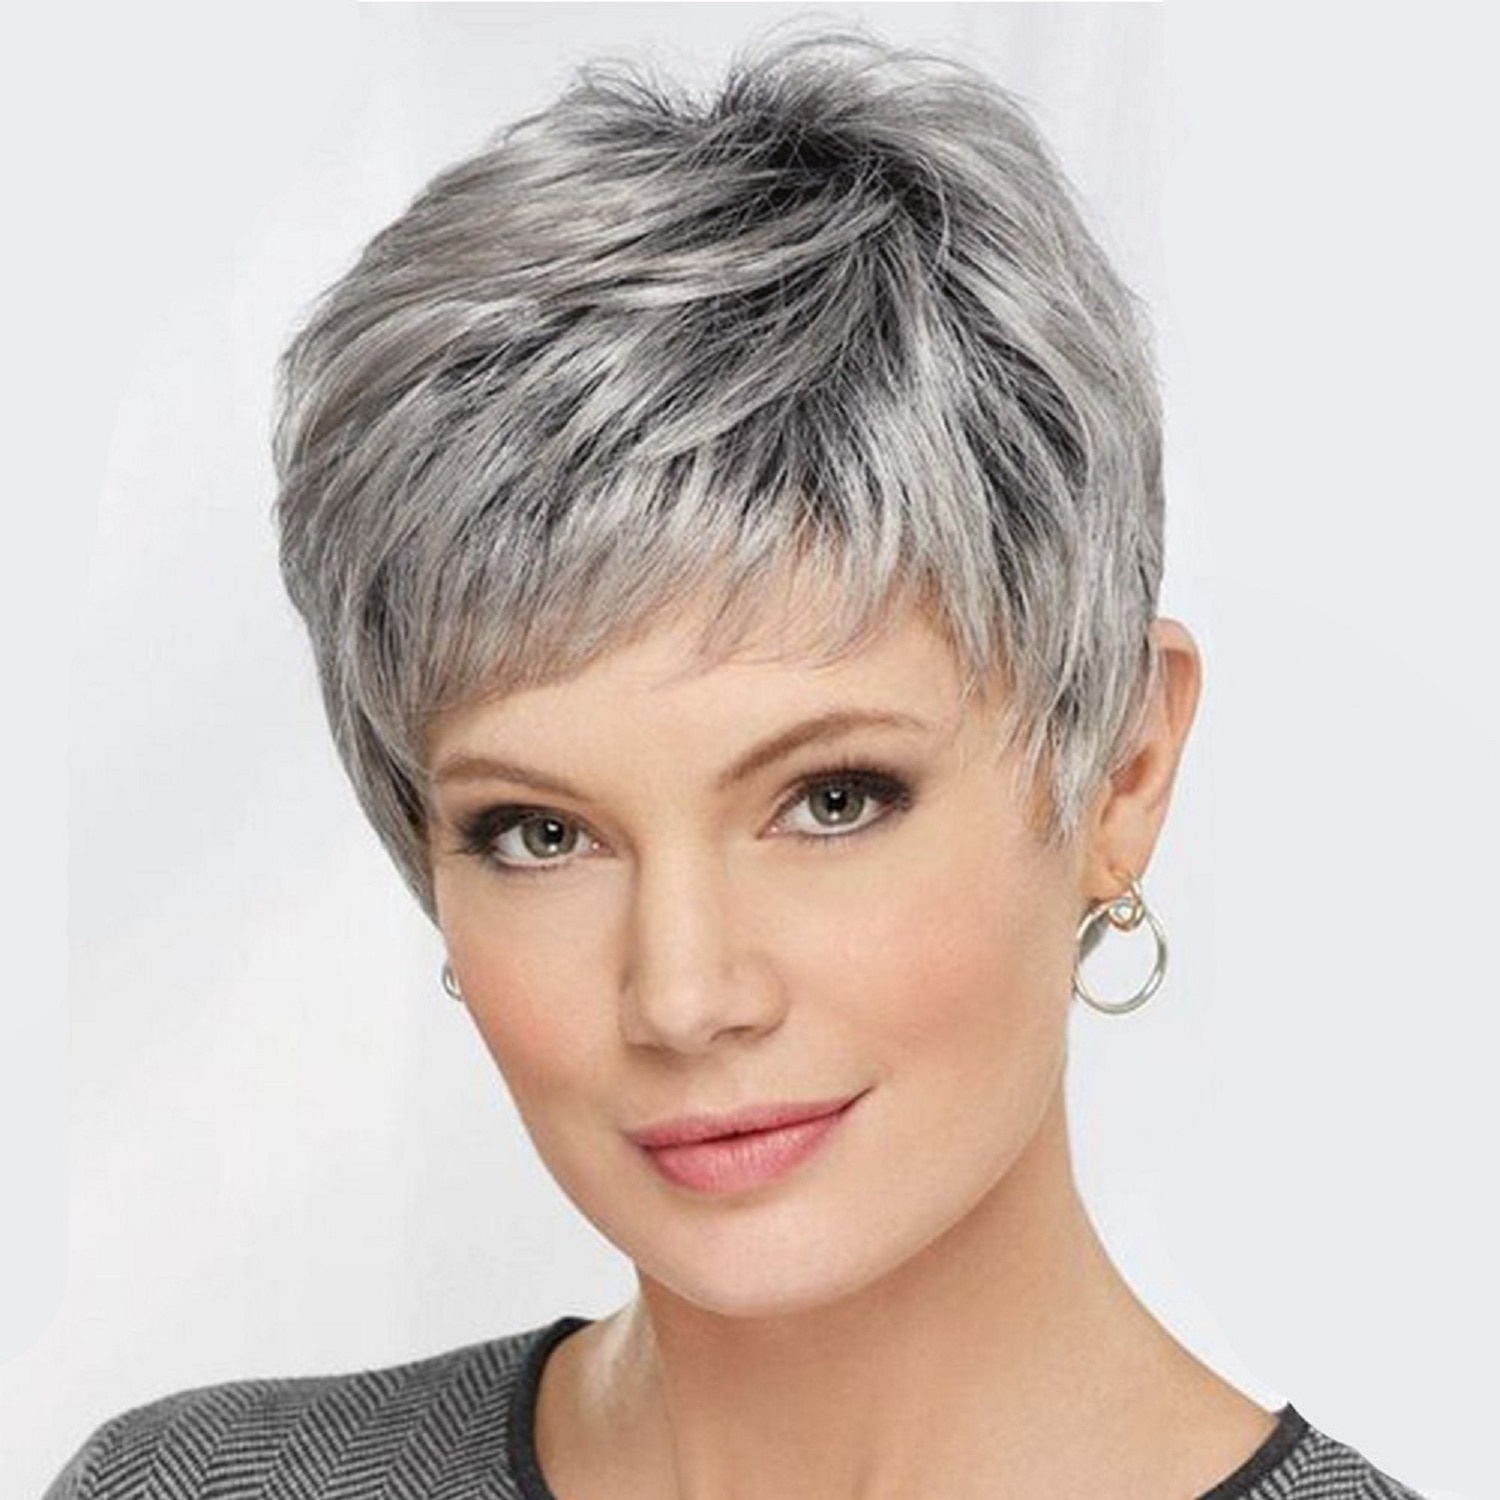 Wigs for Women Synthetic Short Wig with Bangs Mixed Gray Wigs High Temperature Fiber Heat Resistant Hair